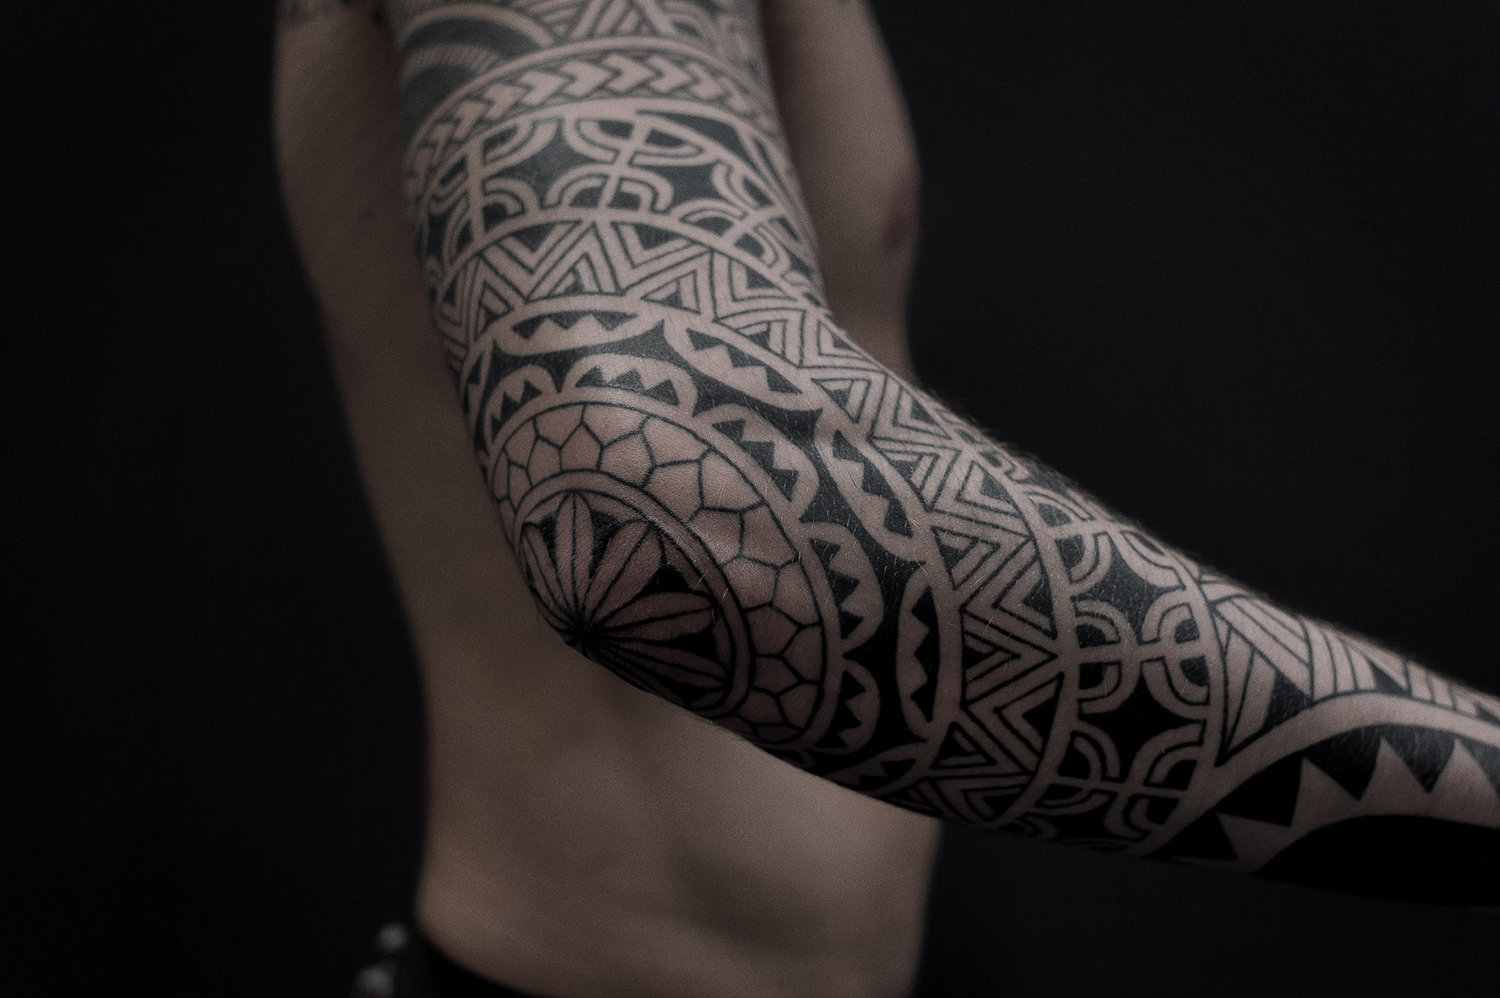 blackwork tattoo on arm, geometric shapes, neo-tribal by paradox